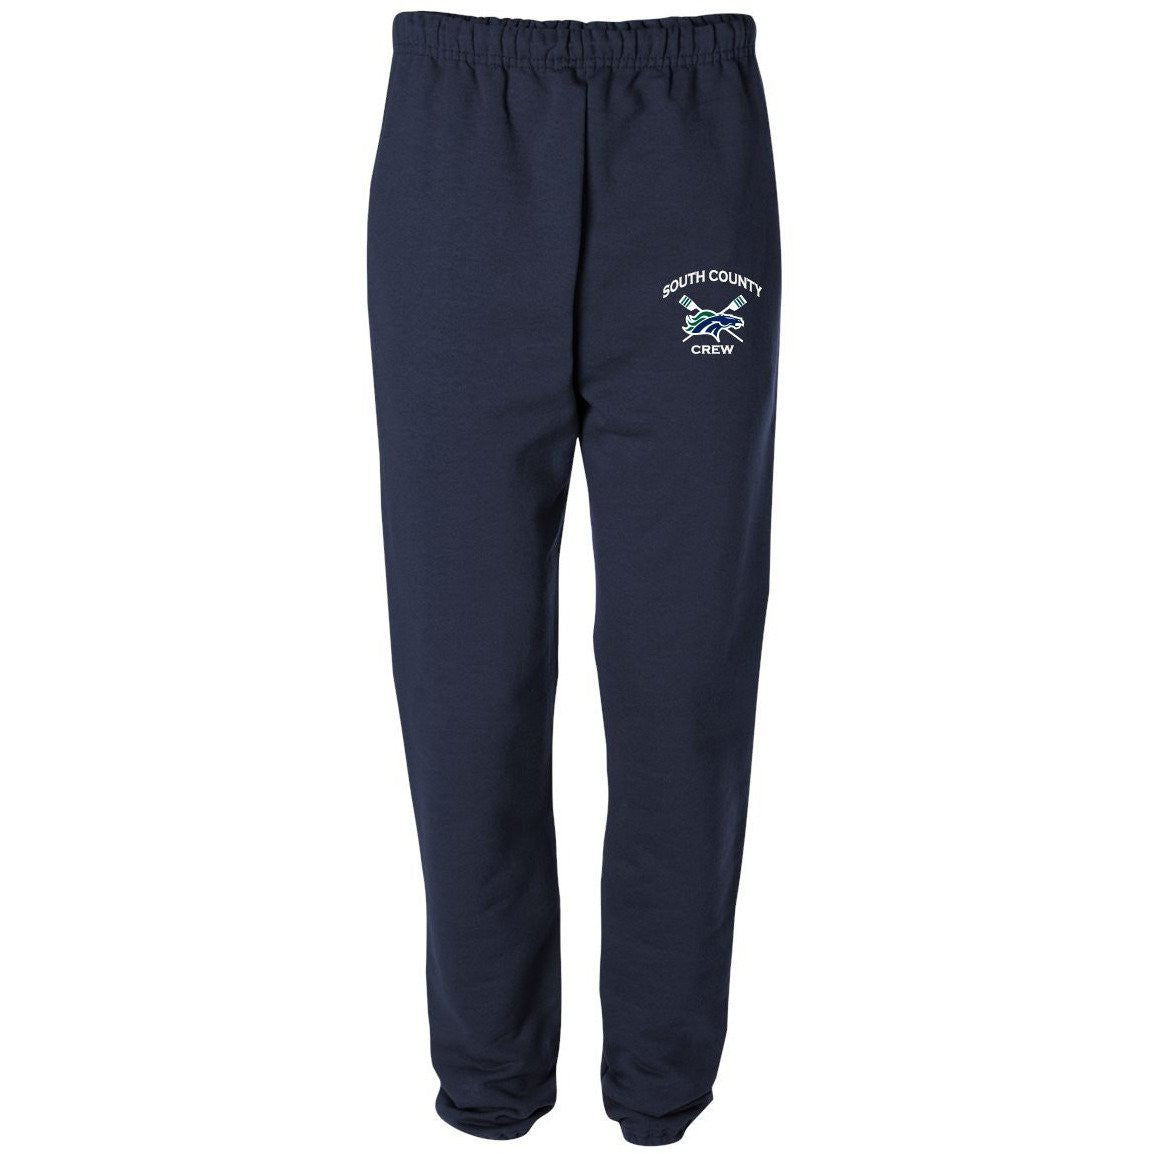 Team South County Crew Sweatpants